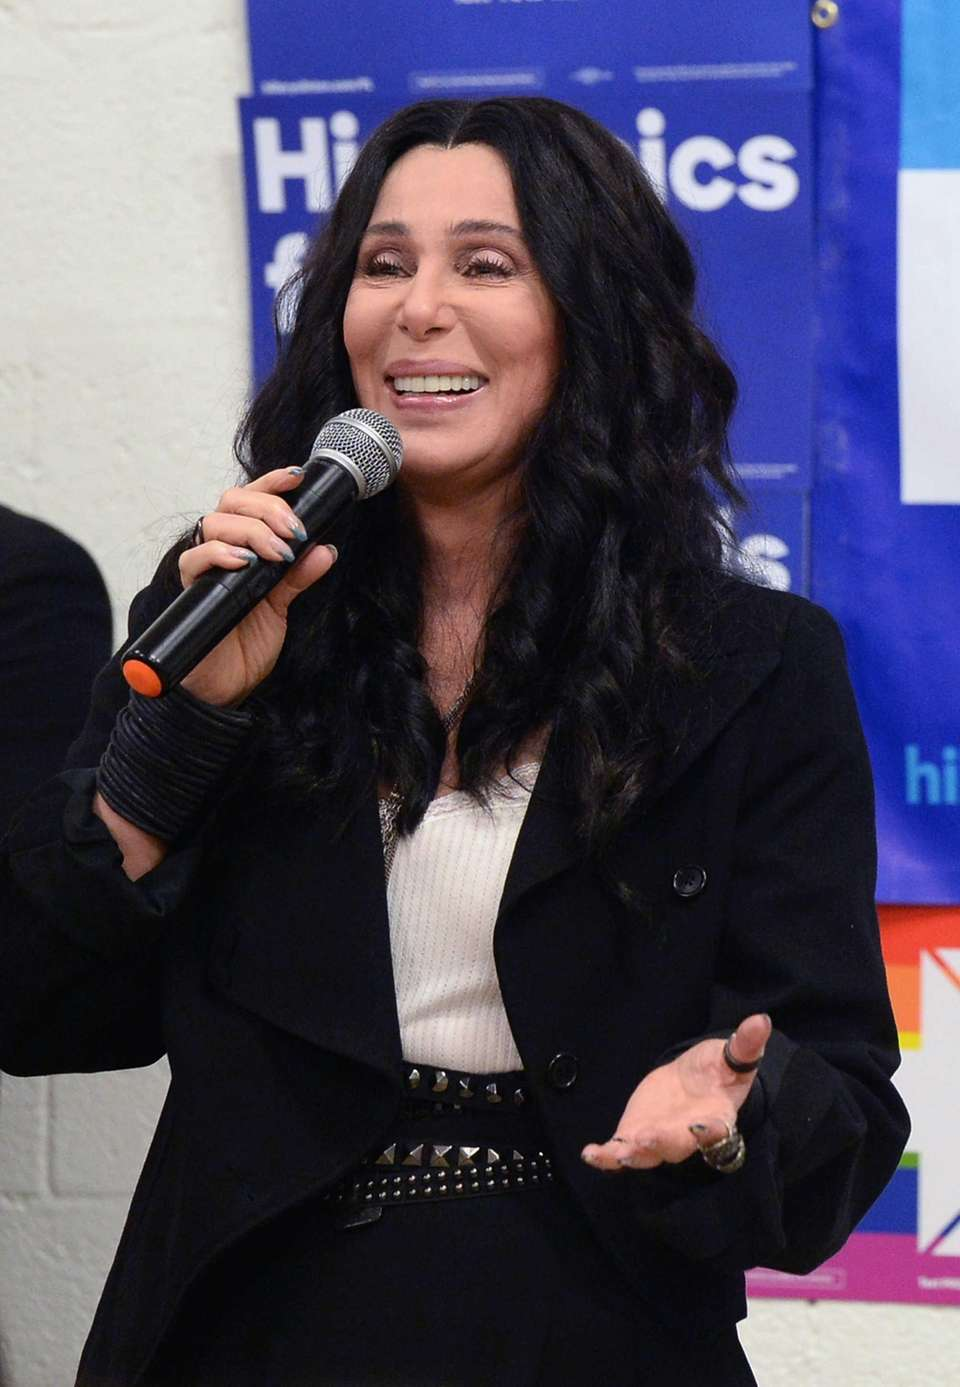 Singer Cher campaigns for Hillary Clinton on Nov.